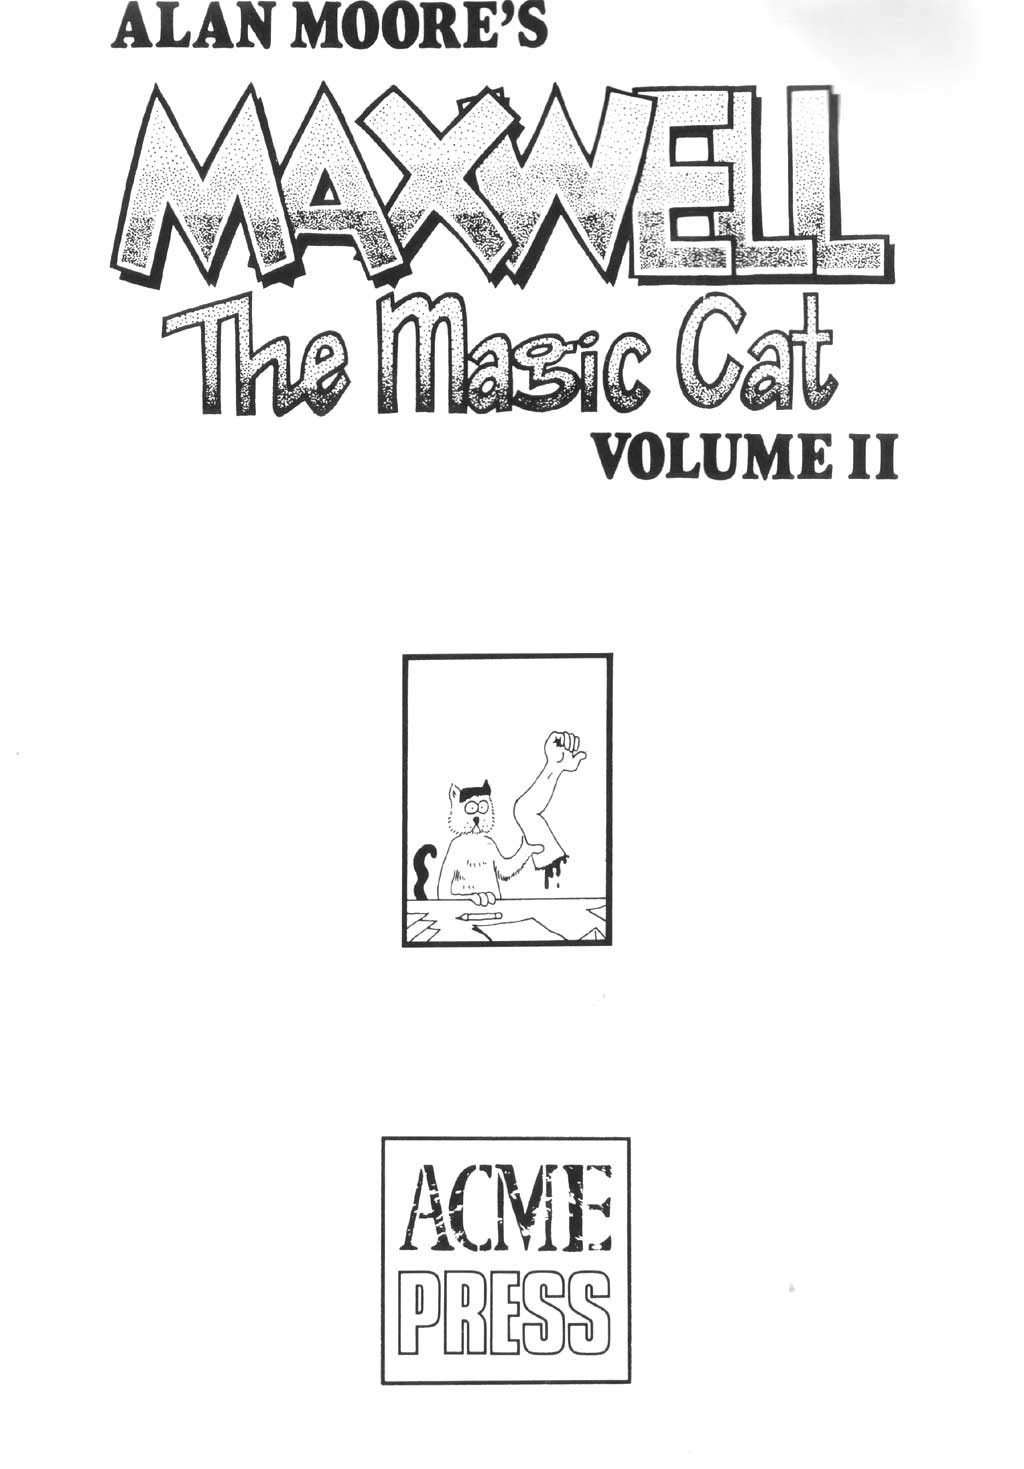 Read online Alan Moore's Maxwell the Magic Cat comic -  Issue #2 - 2